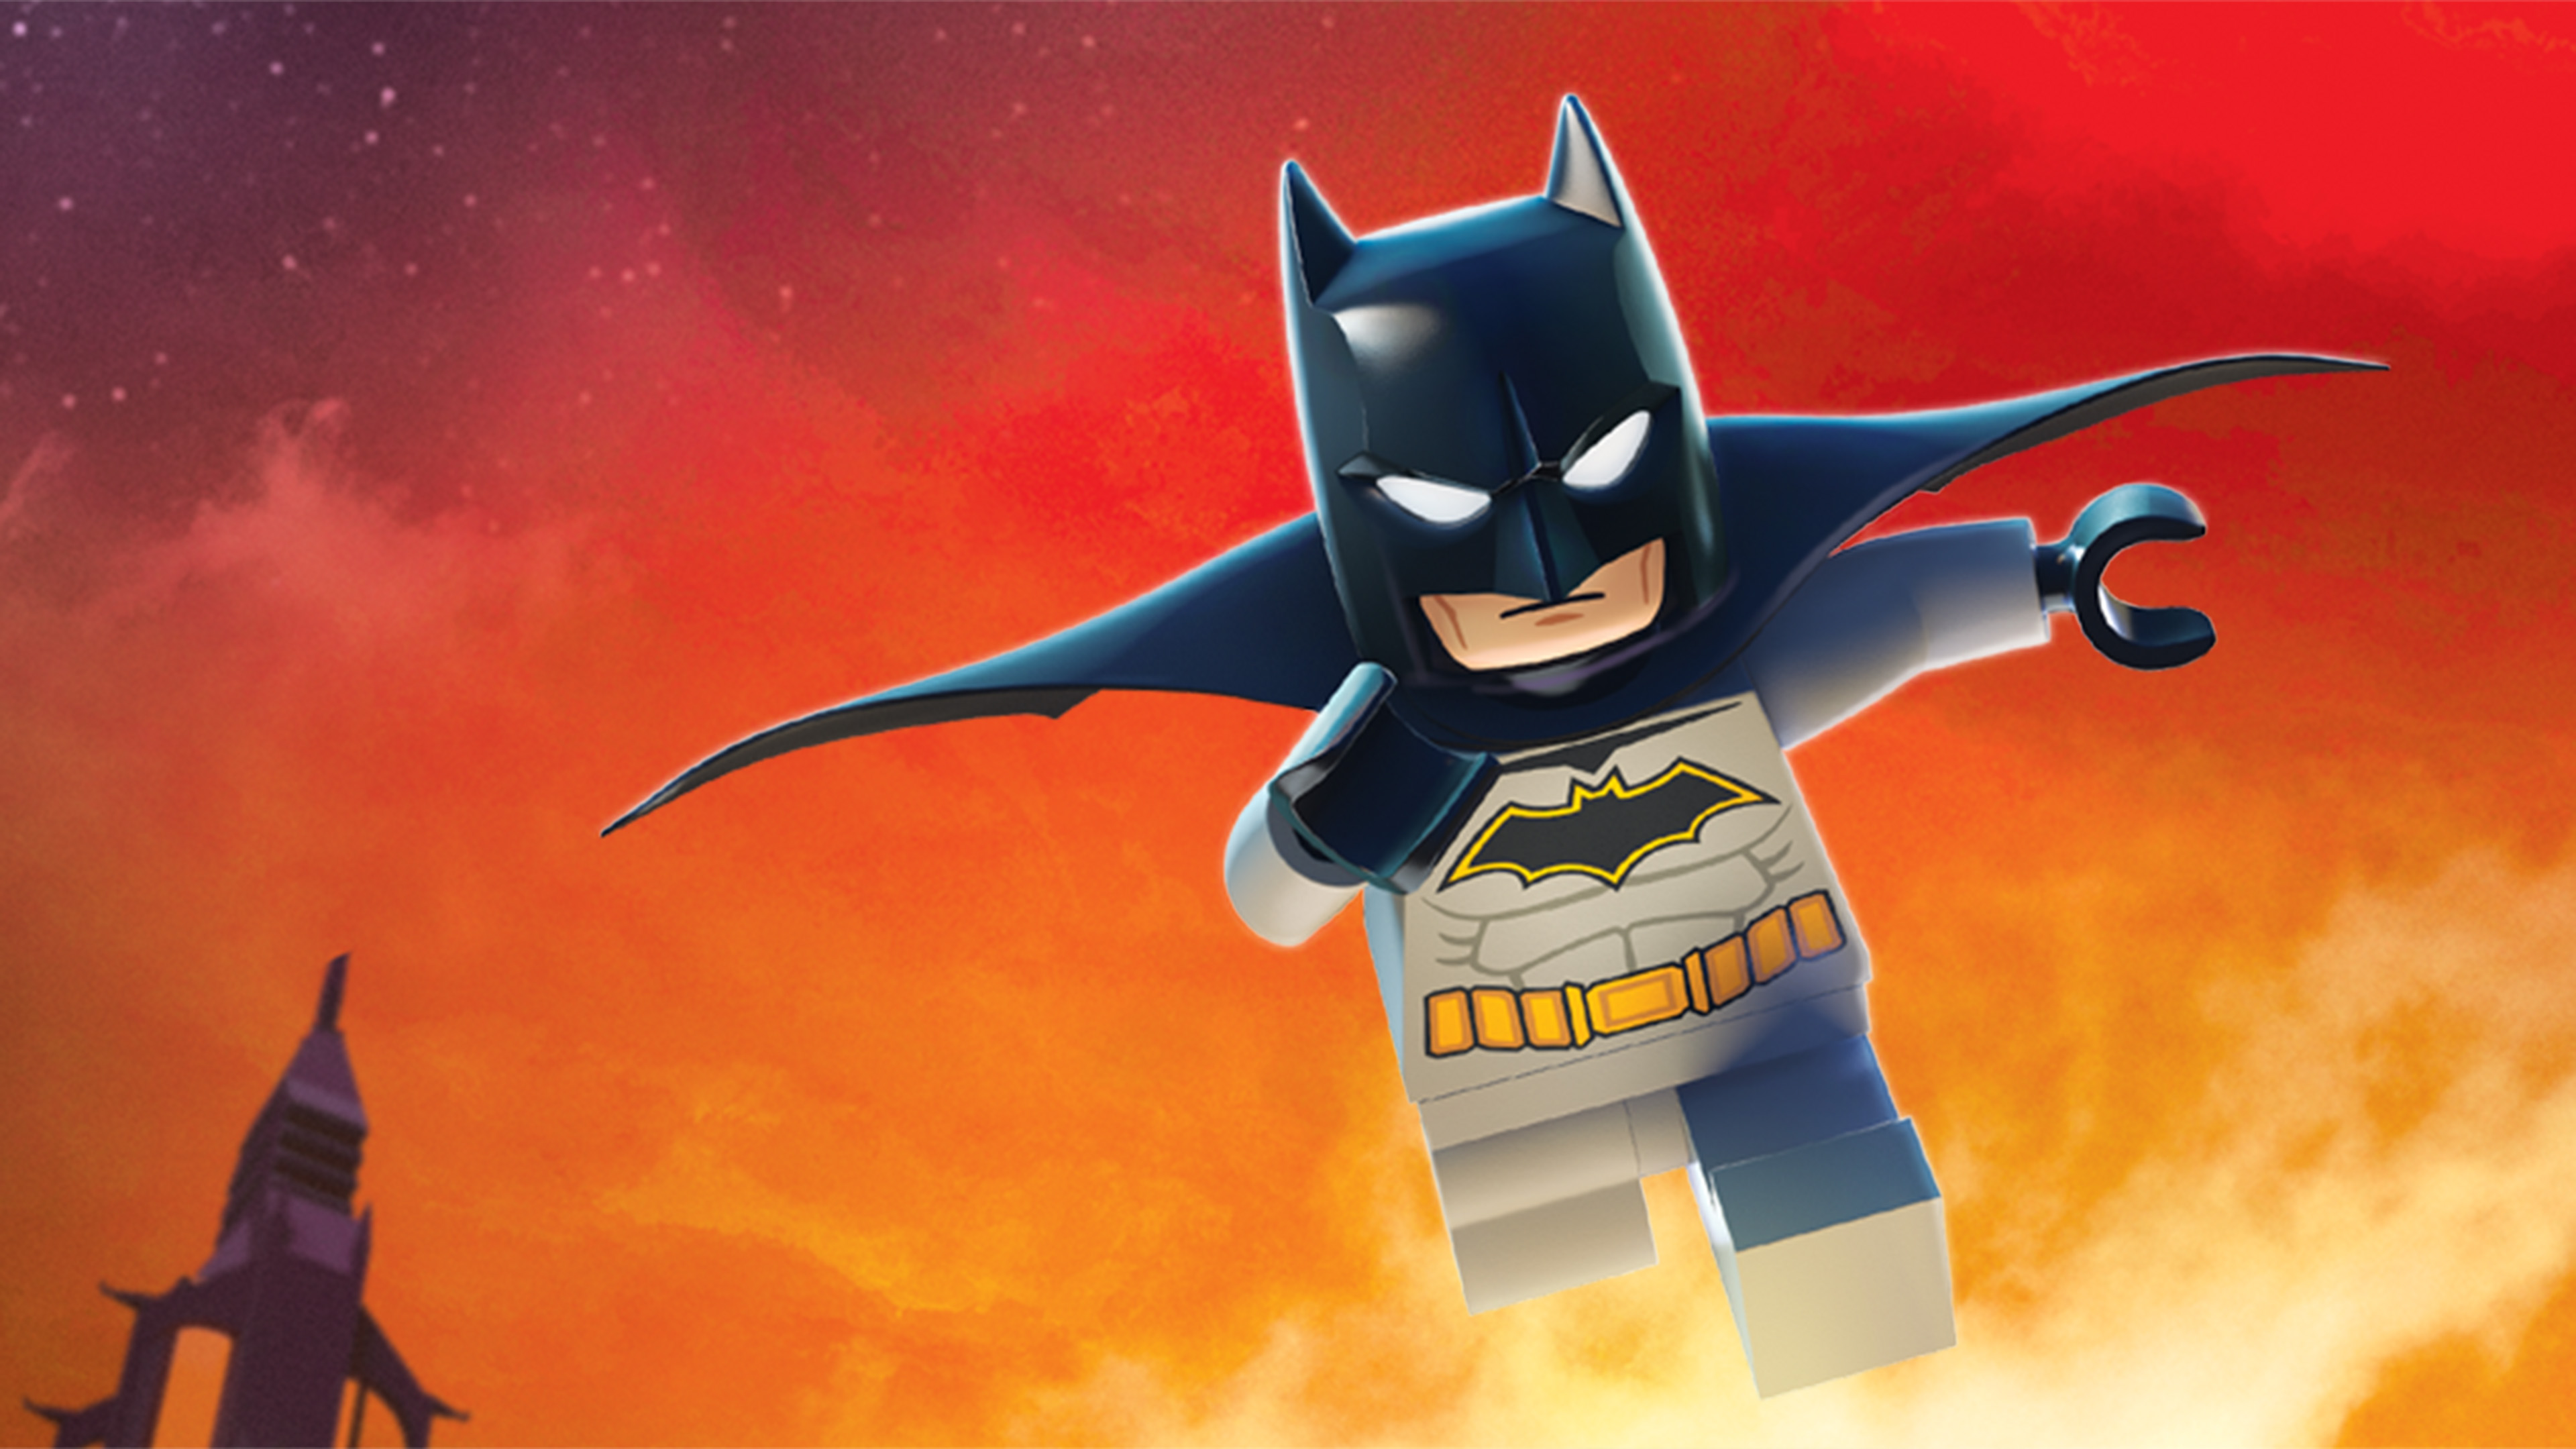 lego batman new 1568054978 - Lego Batman New - superheroes wallpapers, hd-wallpapers, digital art wallpapers, batman wallpapers, artwork wallpapers, 4k-wallpapers